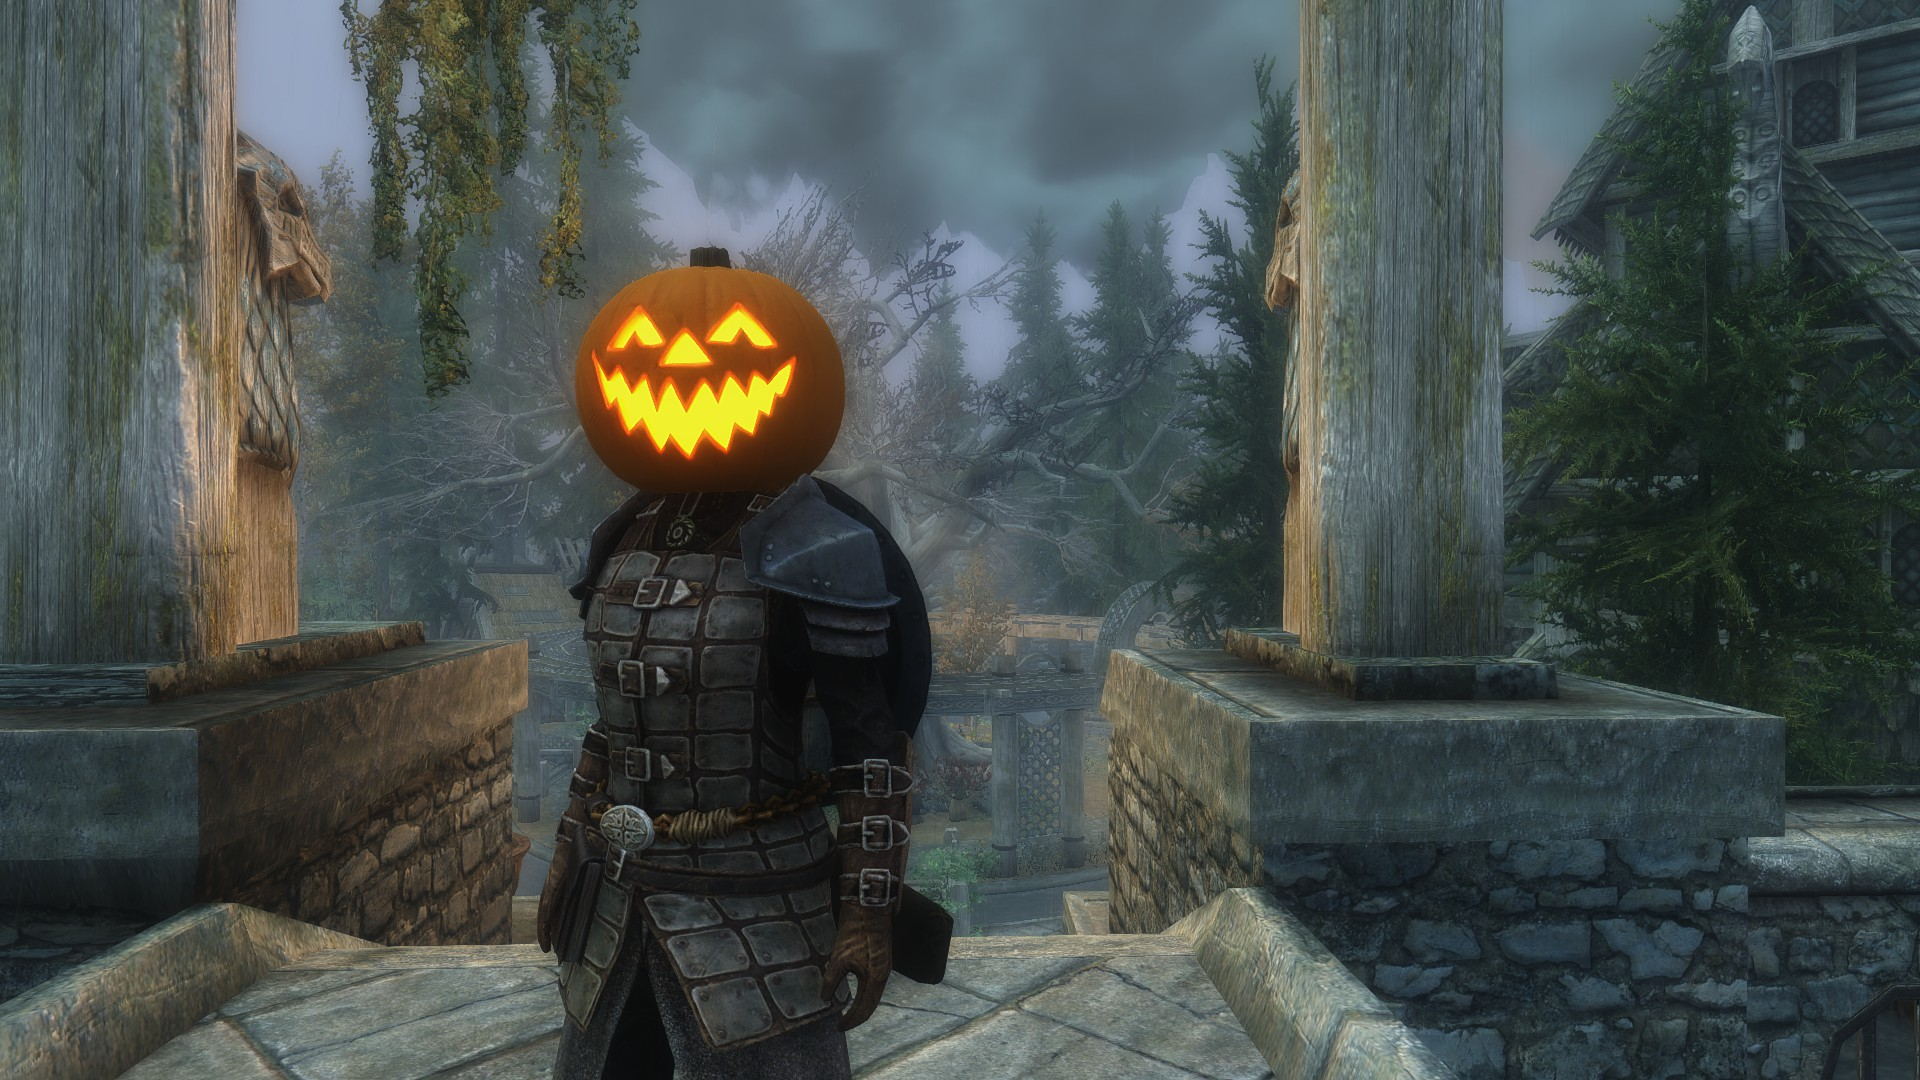 2015 October Screenshot Contest [WINNERS ANNOUNCED!] 14C77856FBE494846BFC56321D649BFB809DF2A4